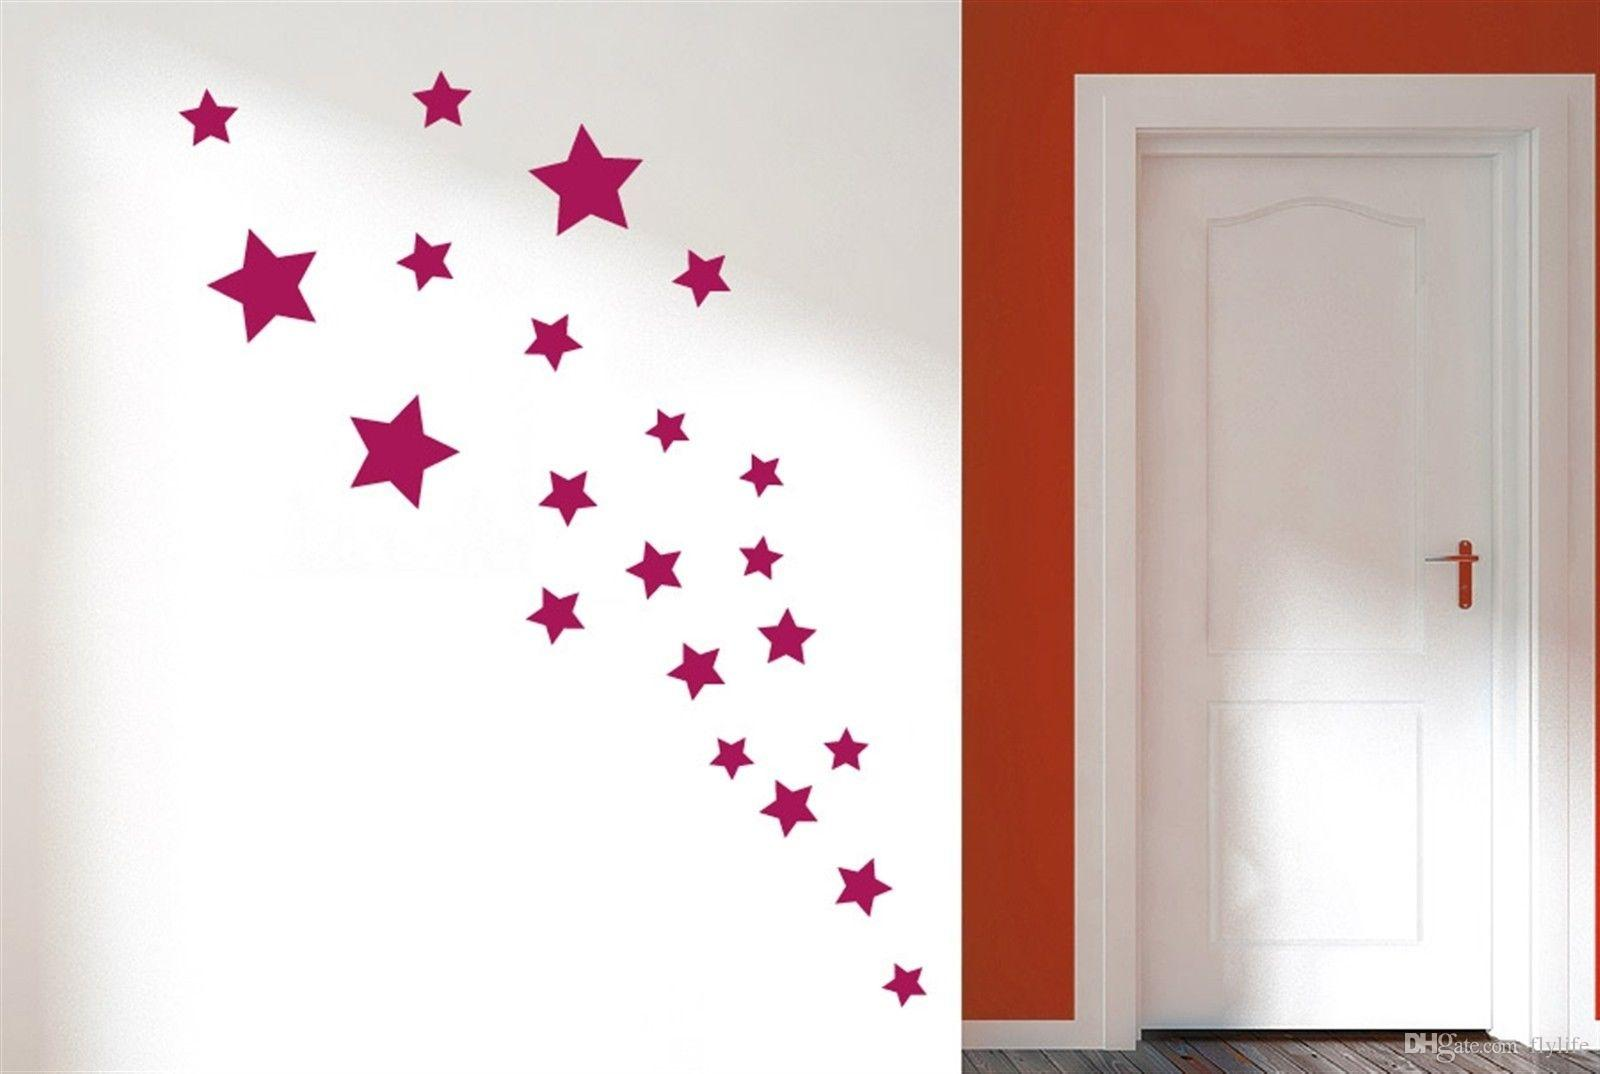 Removable Various Color Stars Decorative Wall Stickers Vinyl Wall Art  Decals for Kids Rooms Home Decor Wall Art Stickers Decorative Wall Decals  Kids Room ...